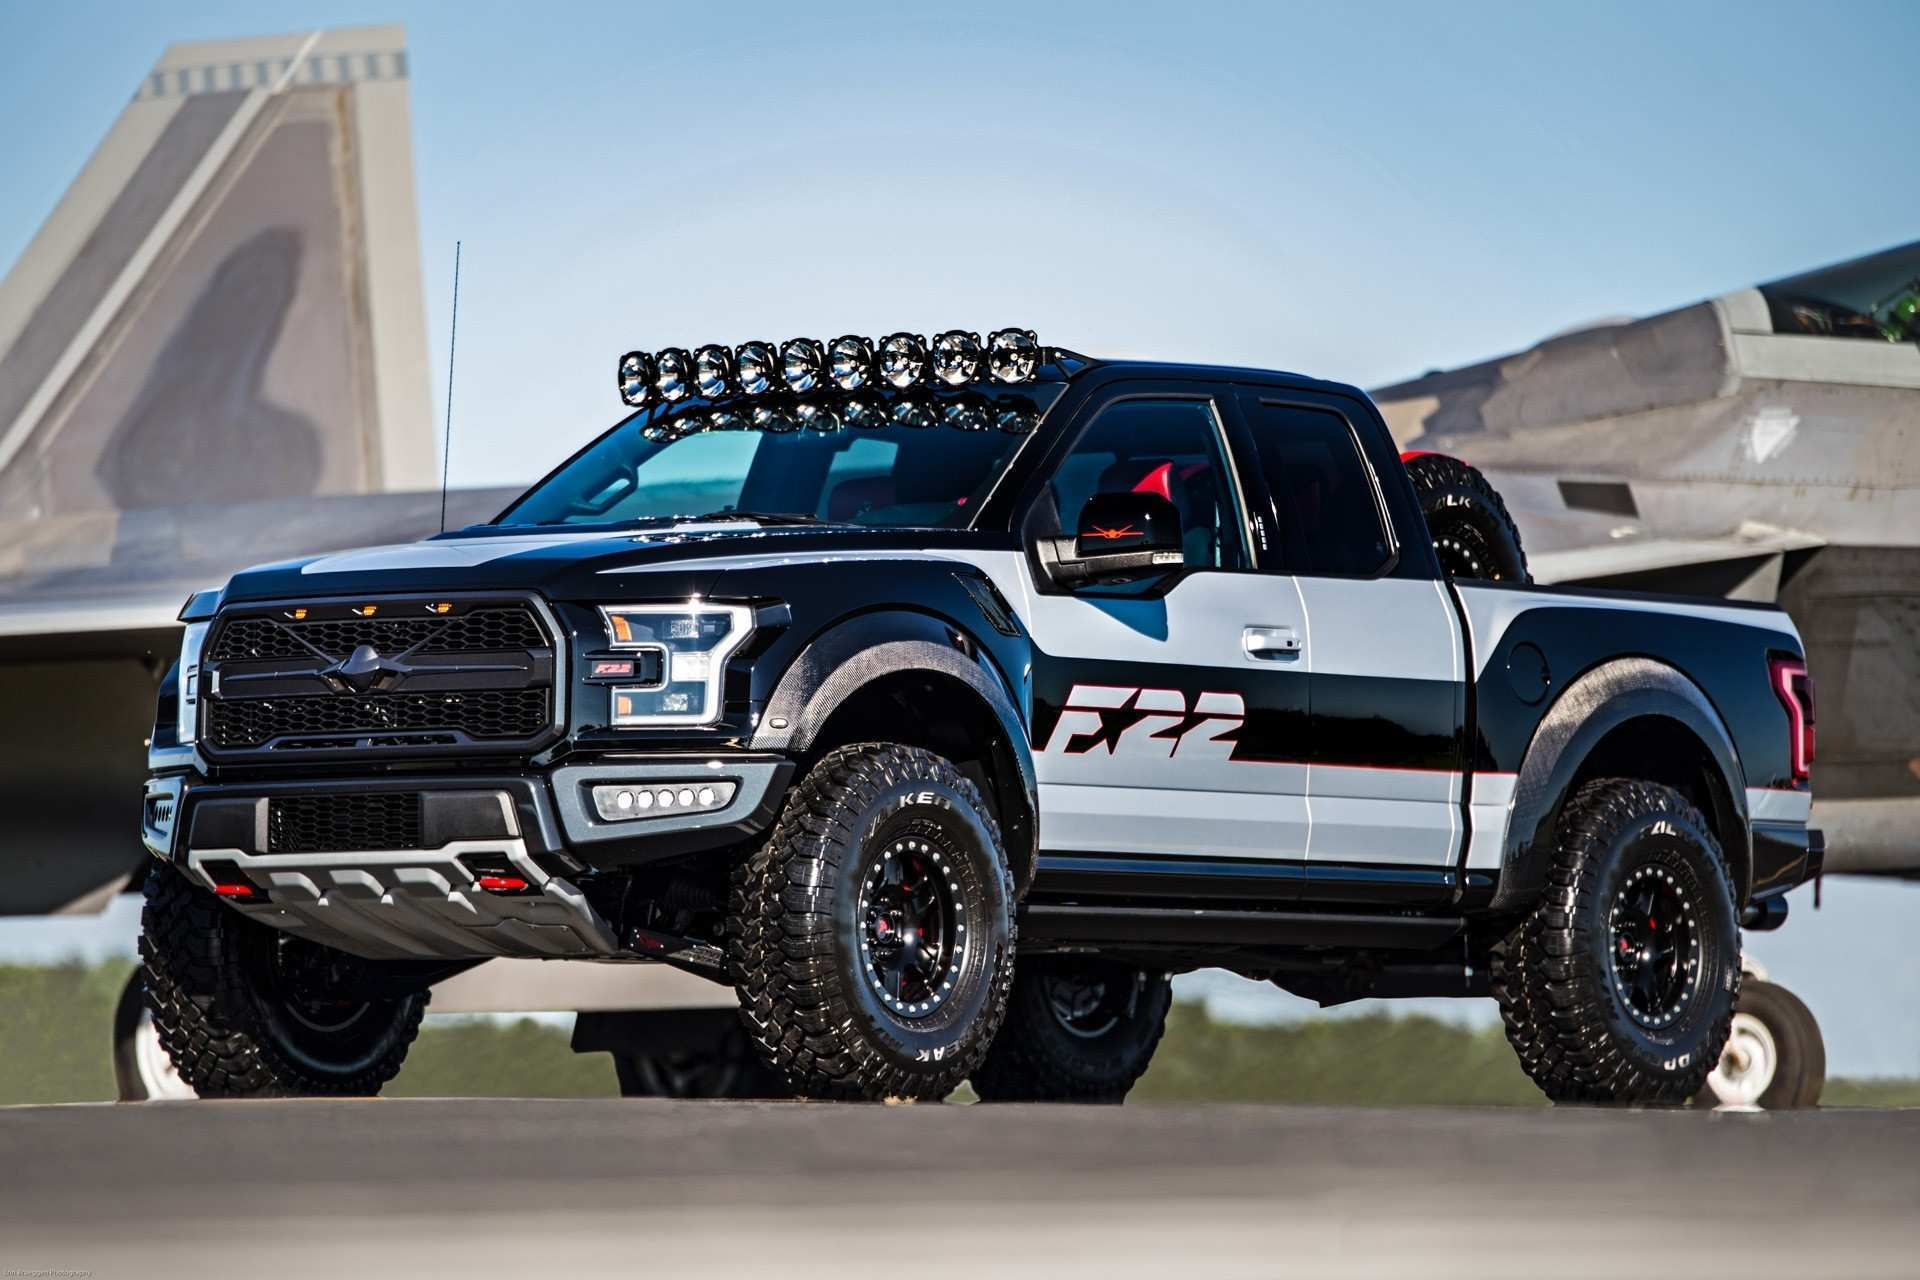 80 All New Ford F150 Raptor 2020 Pricing